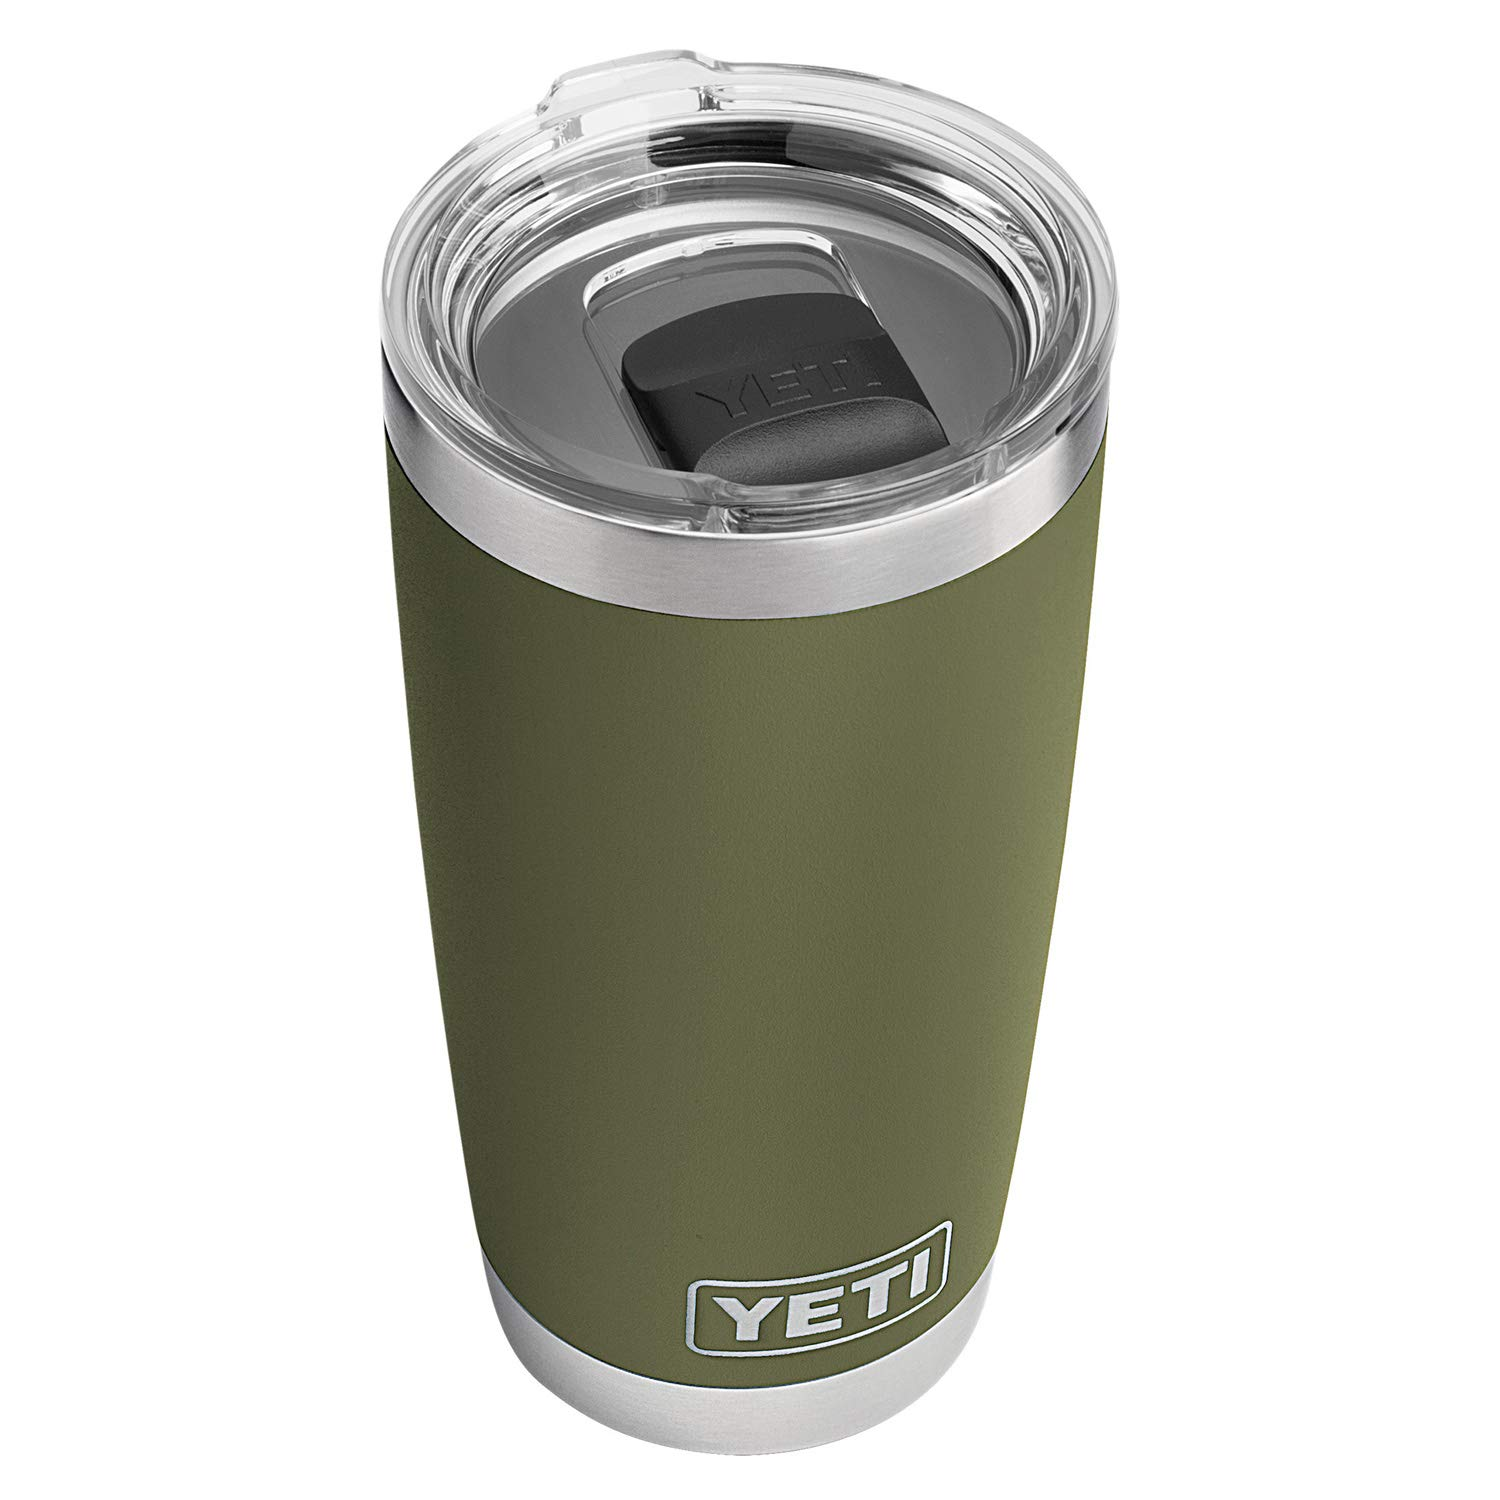 YETI Rambler 20 oz Stainless Steel Vacuum Insulated Tumbler w/MagSlider Lid, Olive Green